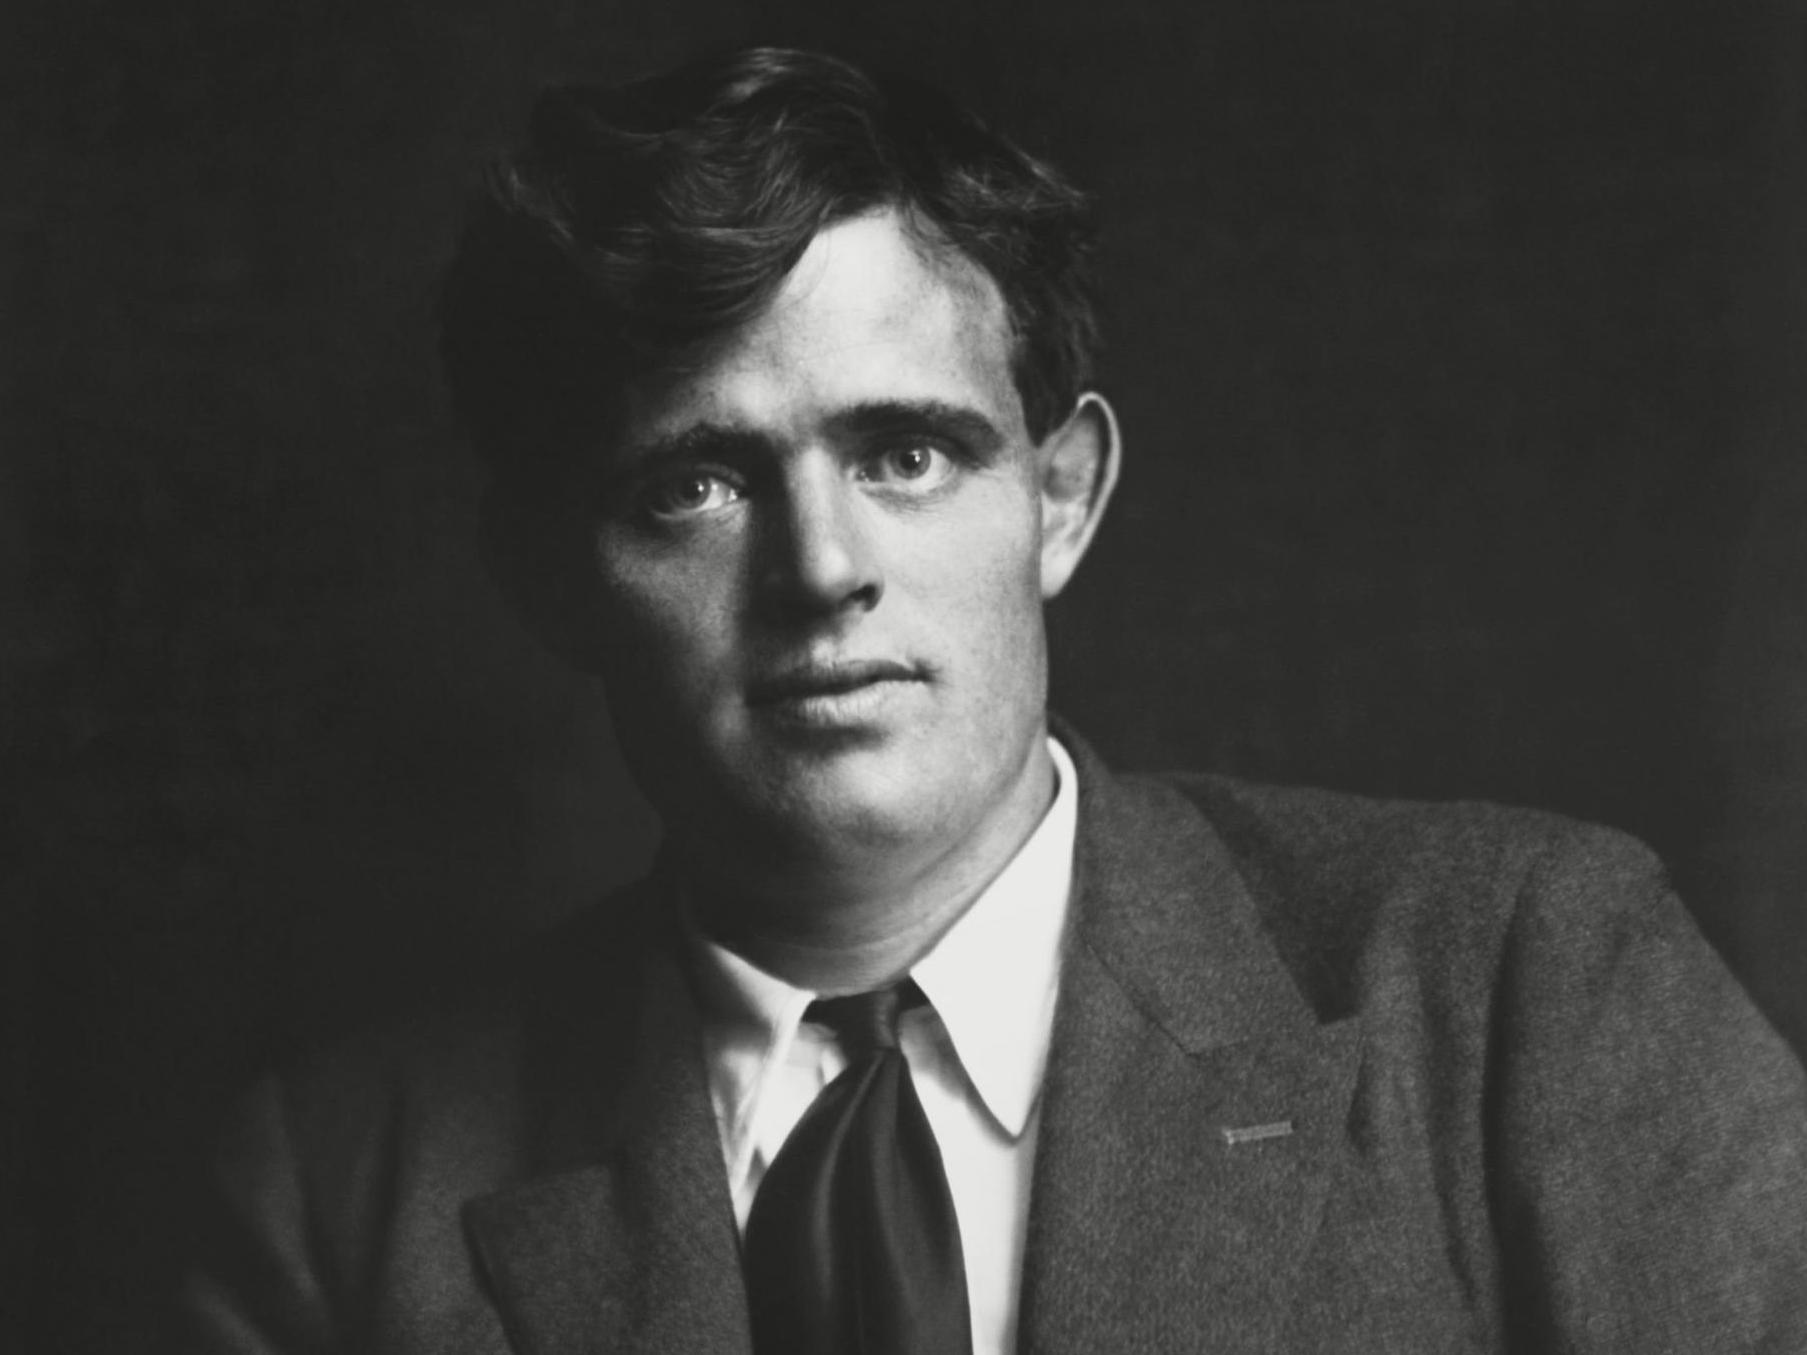 The story of Jack London, the reckless, alcoholic adventurer who wrote The Call of the Wild